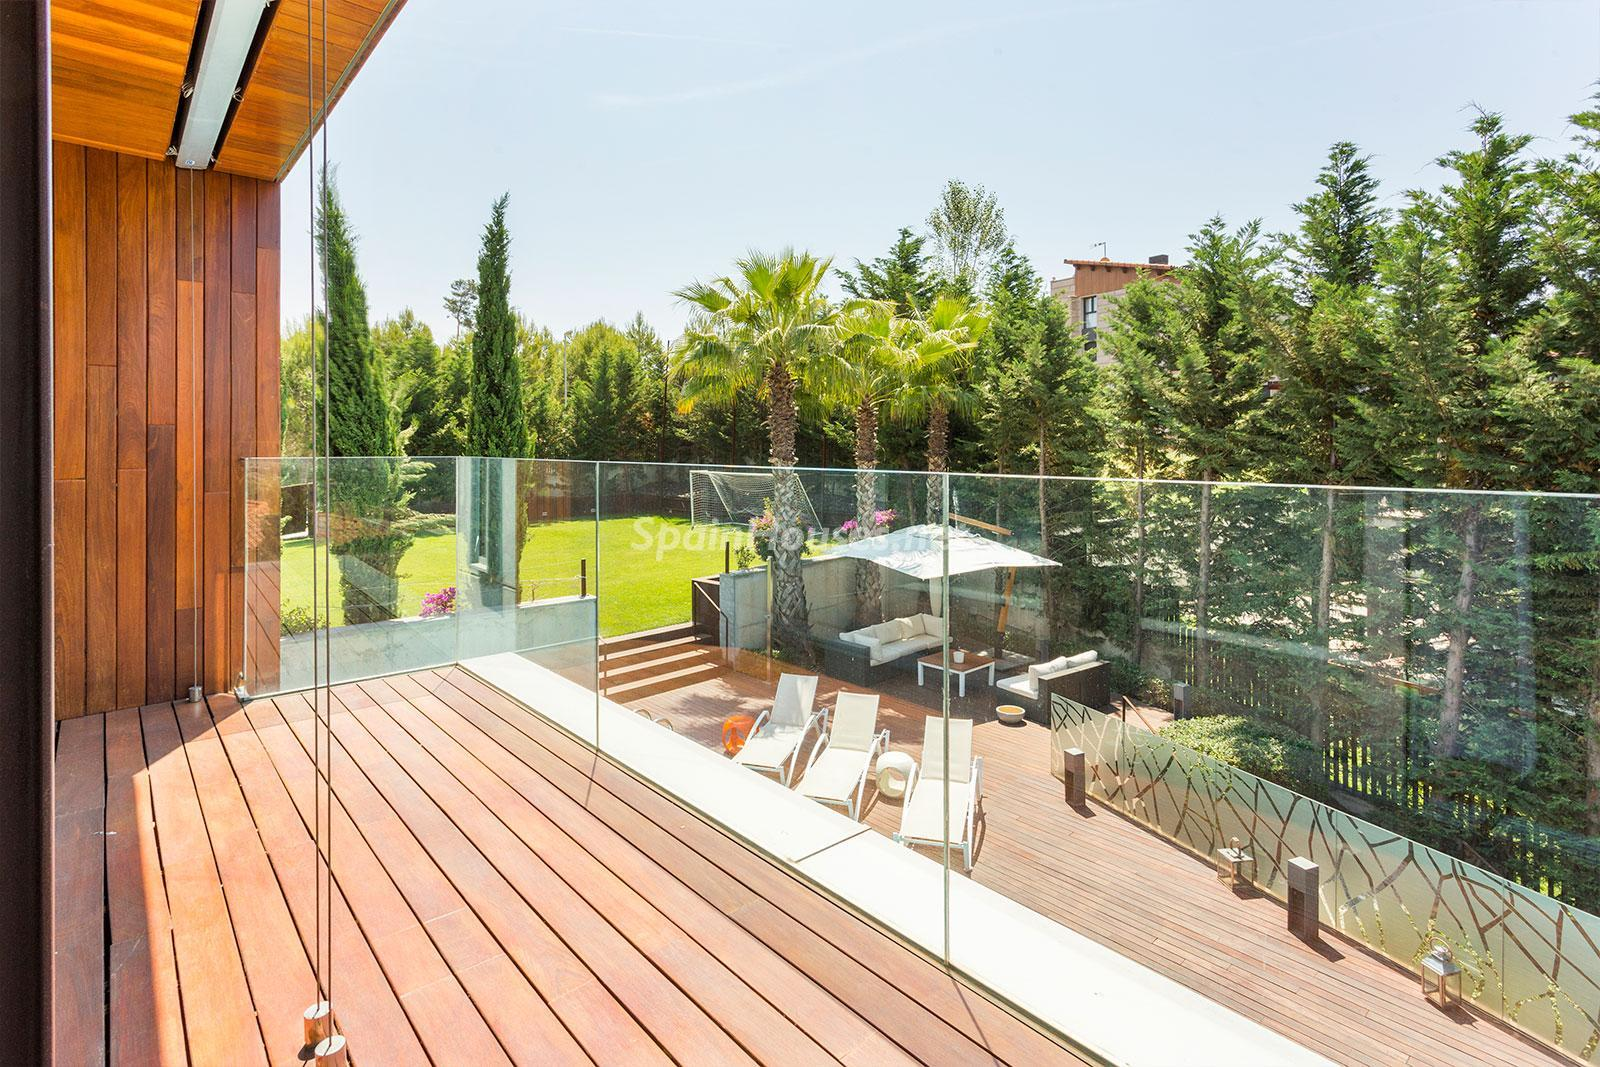 10. House for sale in Barcelona city - Superb 5 bed home in Barcelona features 2 swimming pools and a huge garden